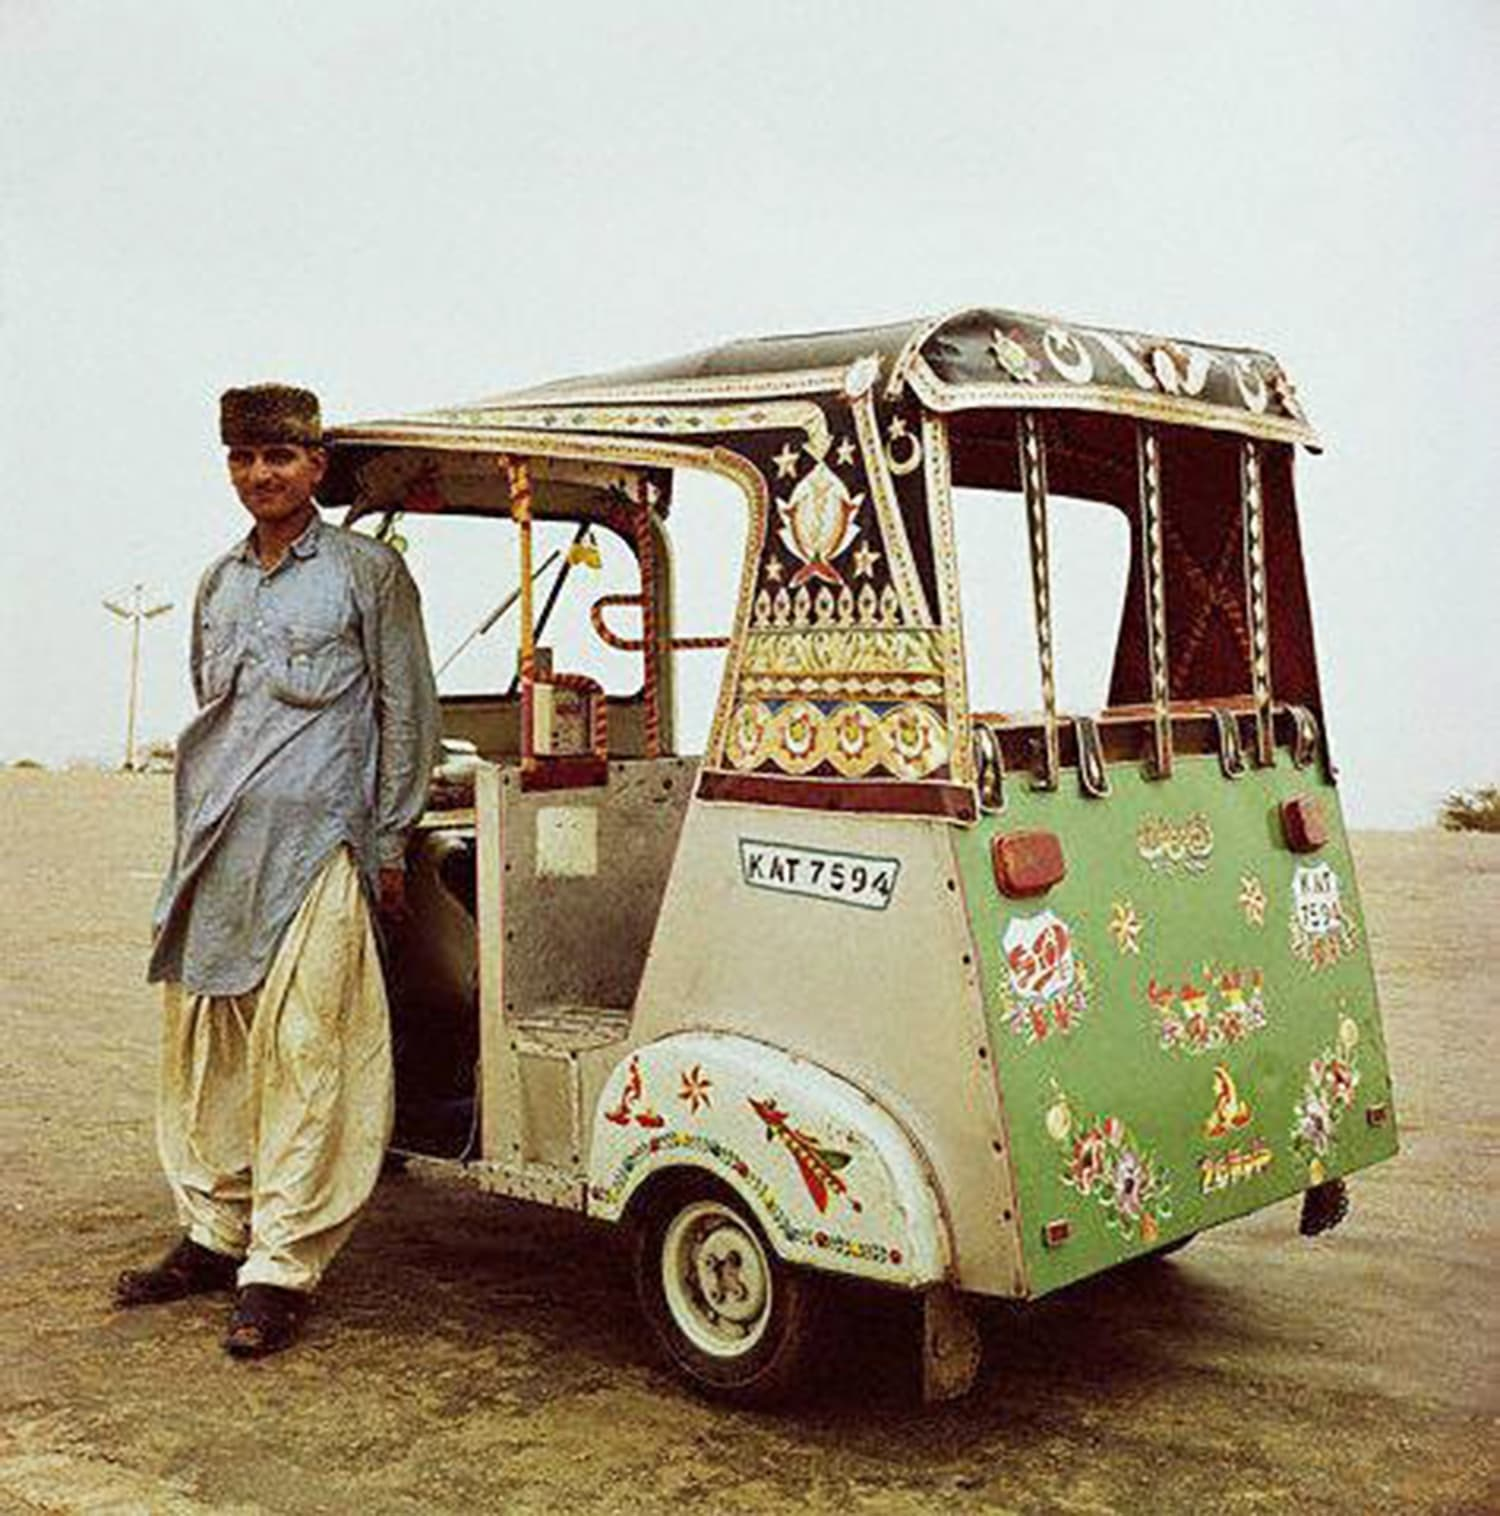 A Pakhtun rickshaw driver in Karachi's Clifton area in 1963. The economic and building boom witnessed during the first phase of the Ayub regime saw the influx of labour arriving in Karachi from Pakistan's NWFP province.